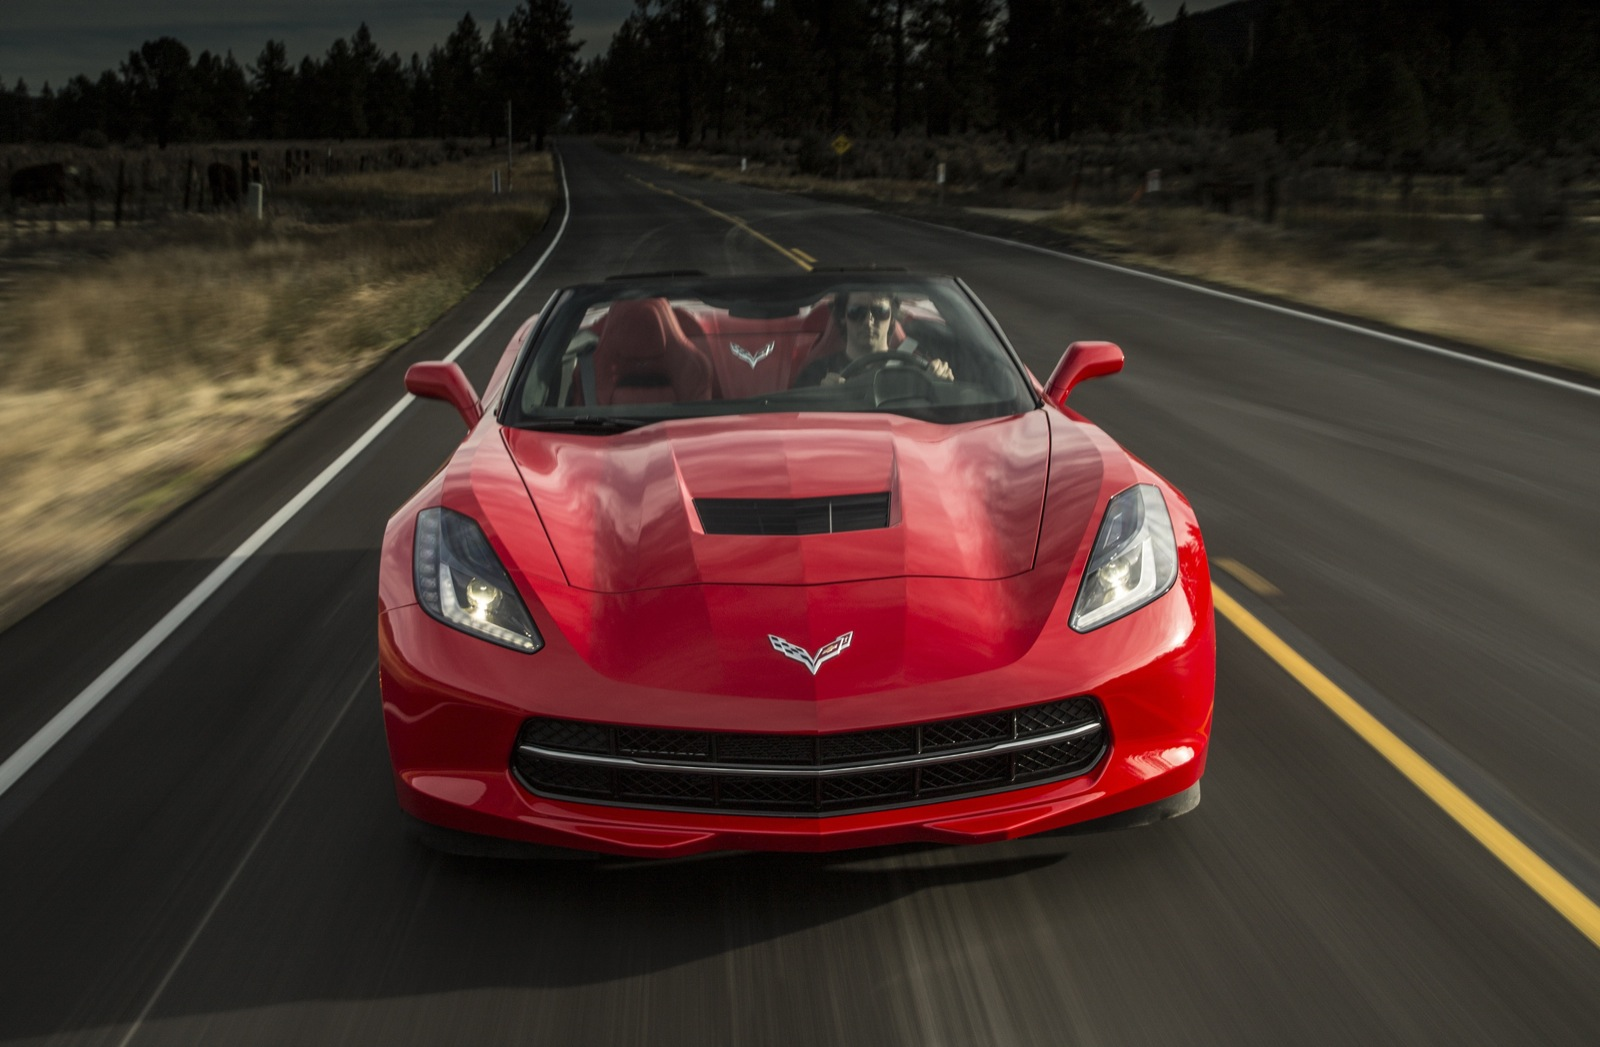 2014 World, Luxury And Performance Car Of The Year Finalists Announced